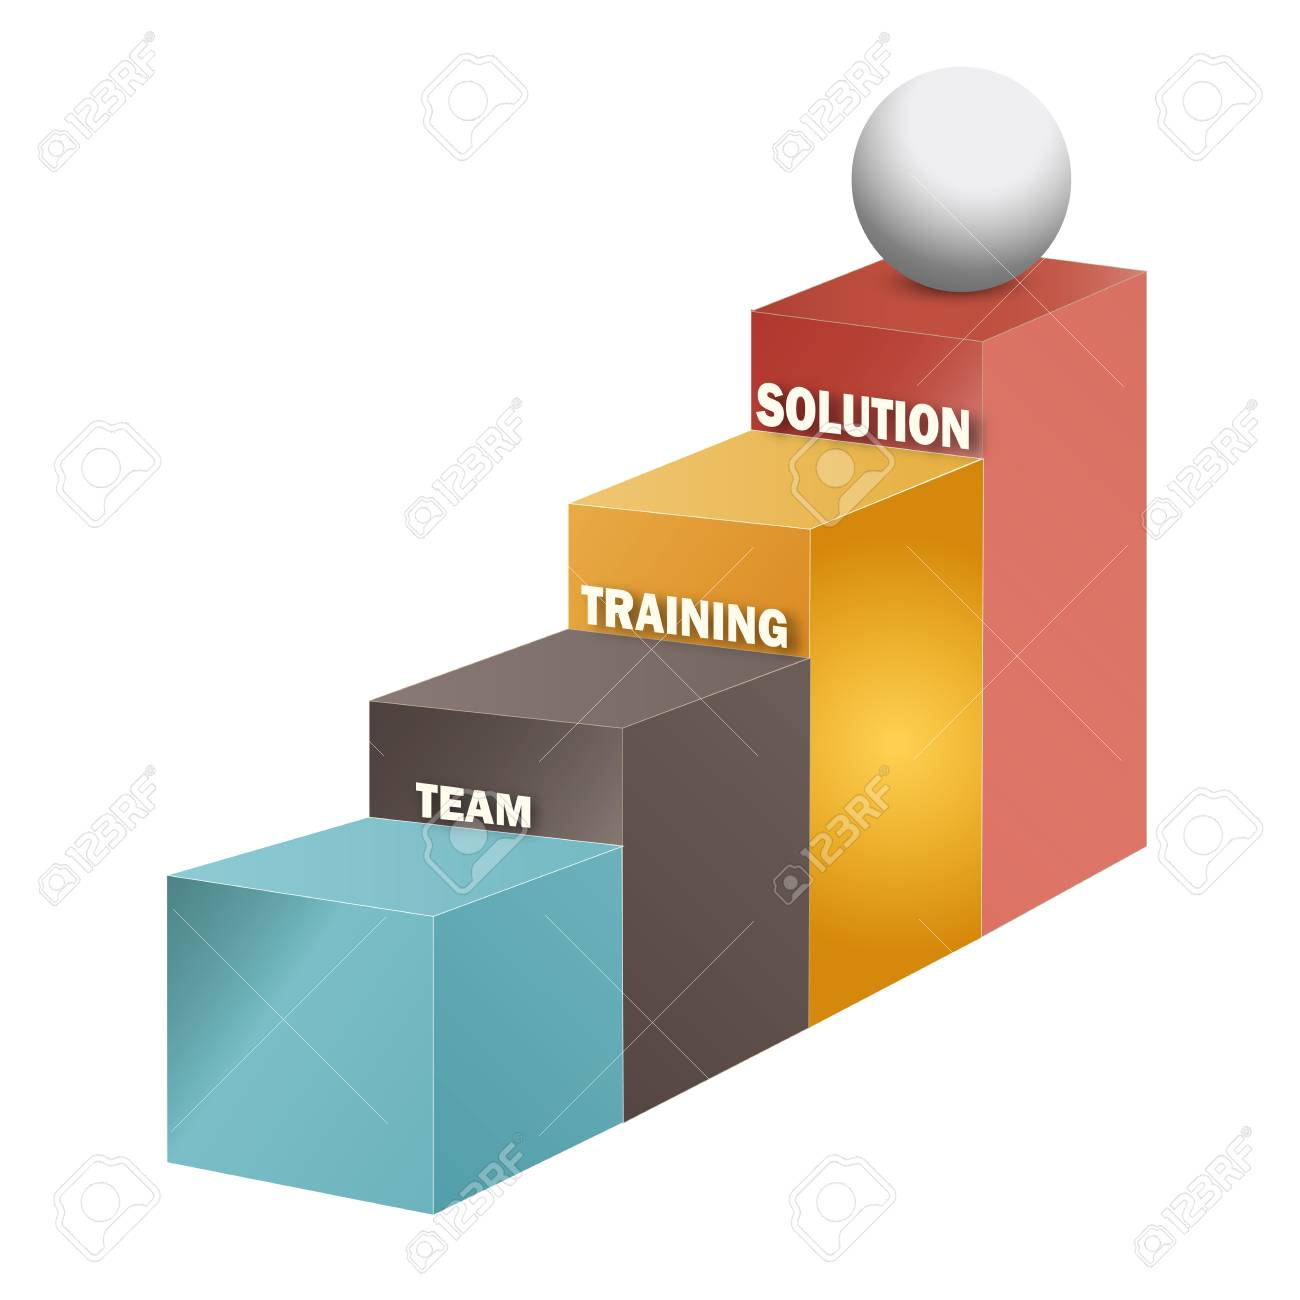 Team, training, solution stairs, 3d on white background Stock Vector - 24988610